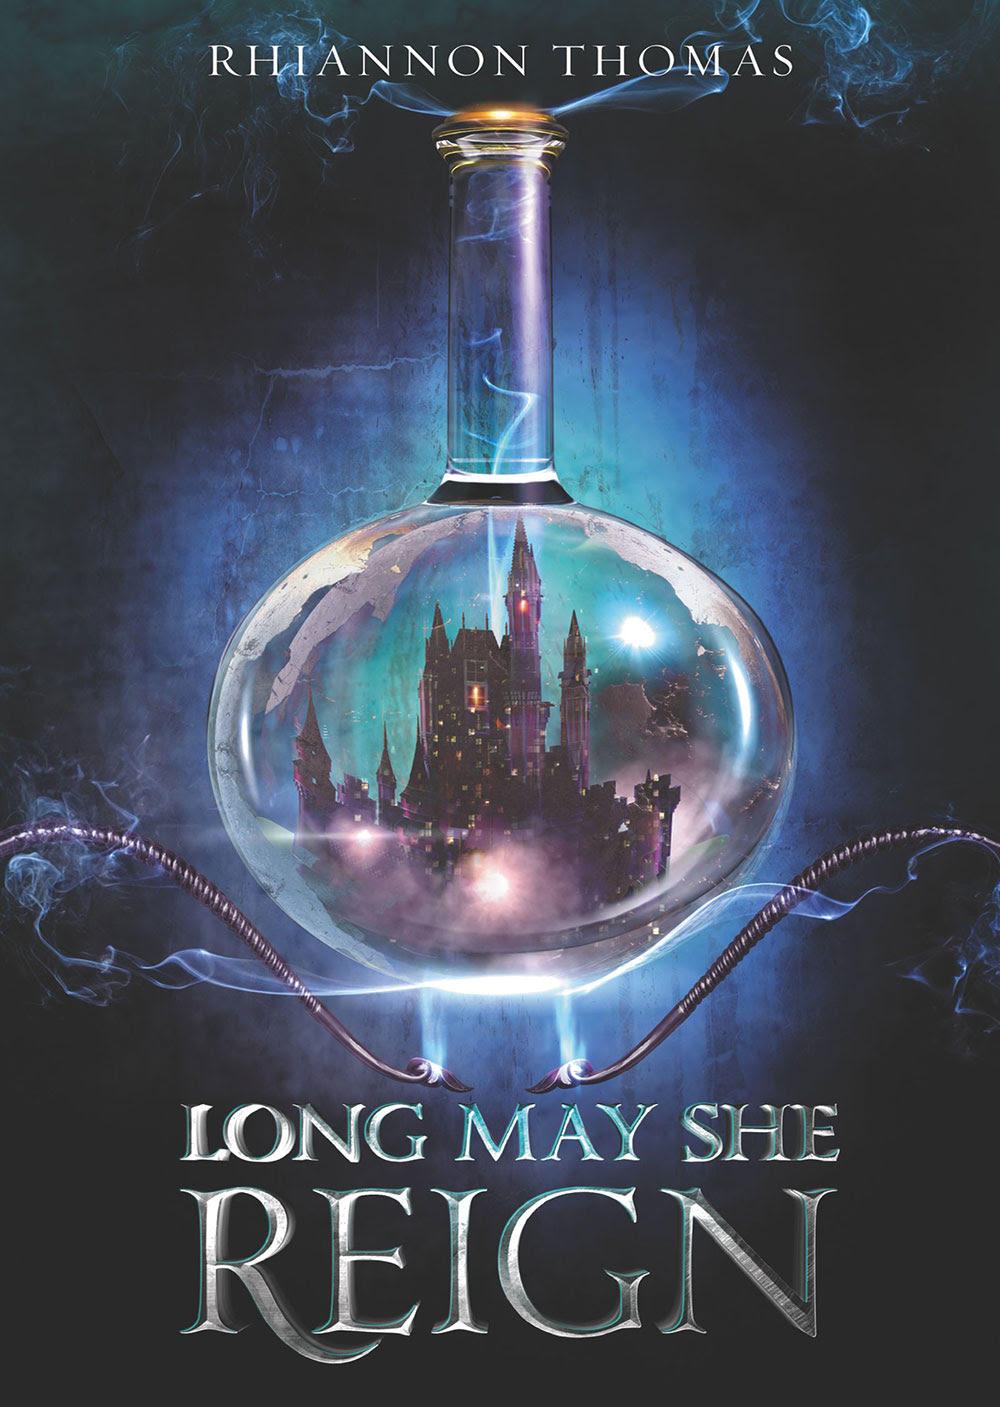 Long may she reign